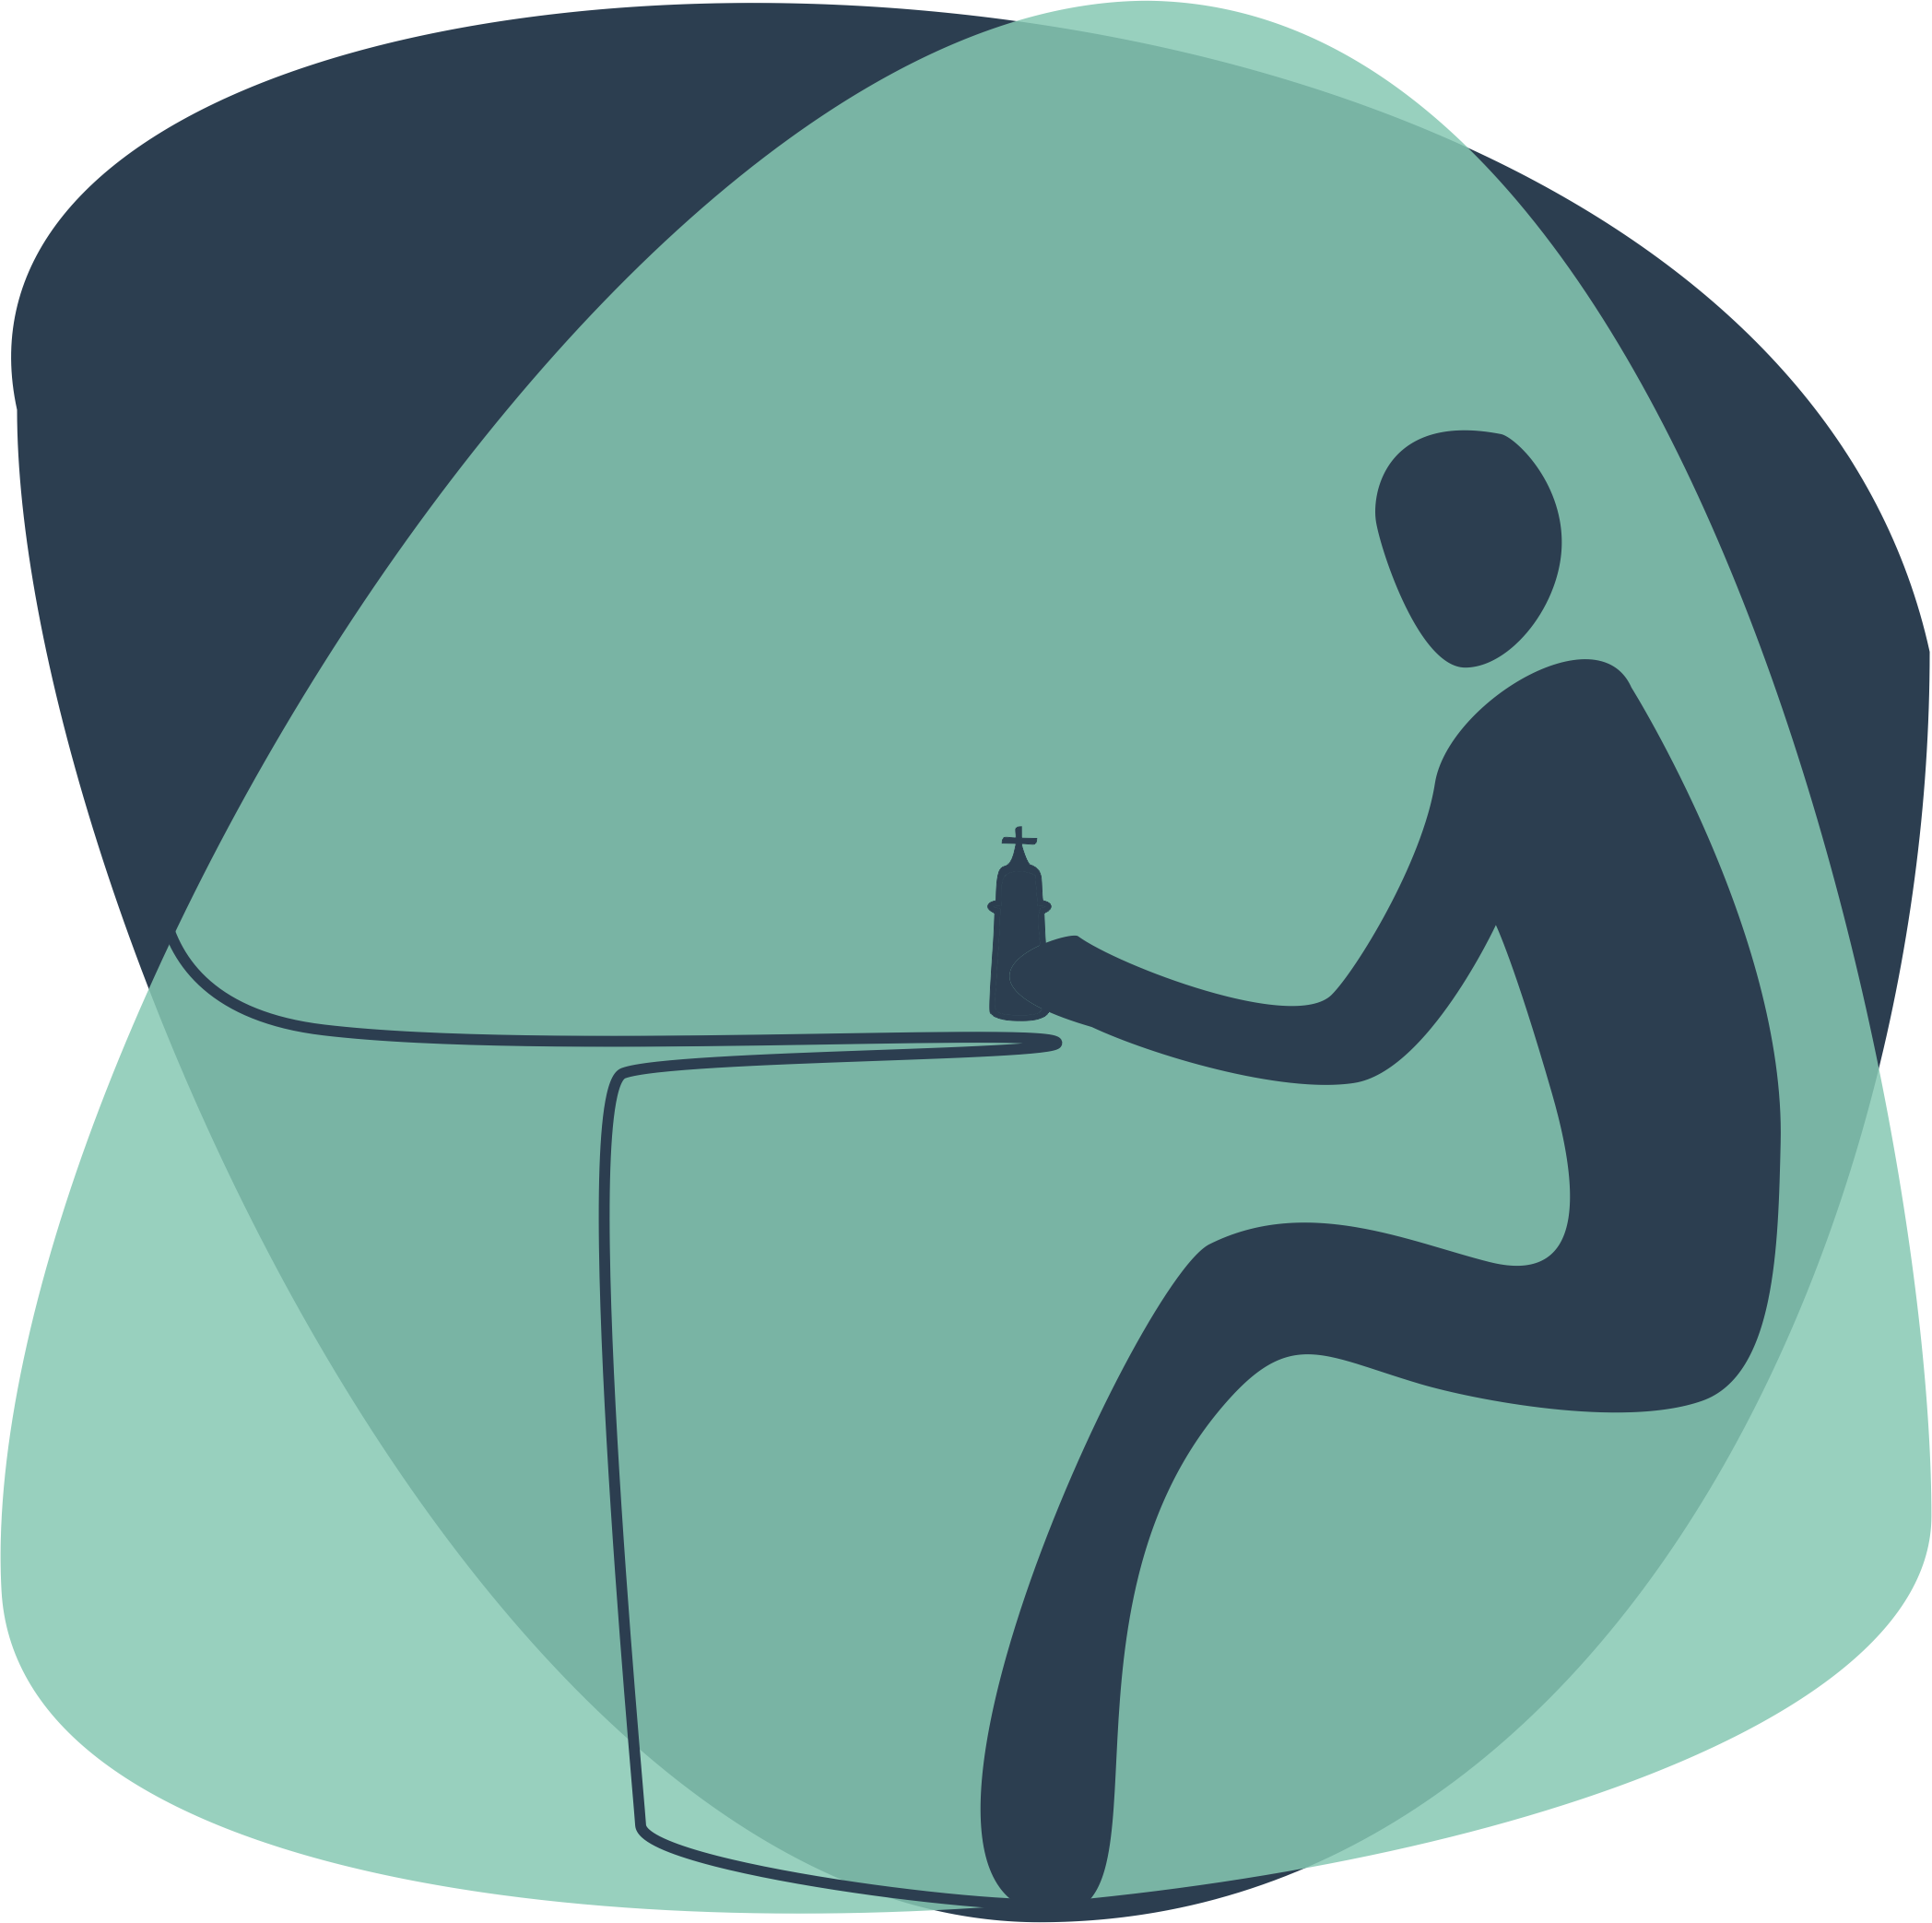 Sports clipart discus. Converge chess